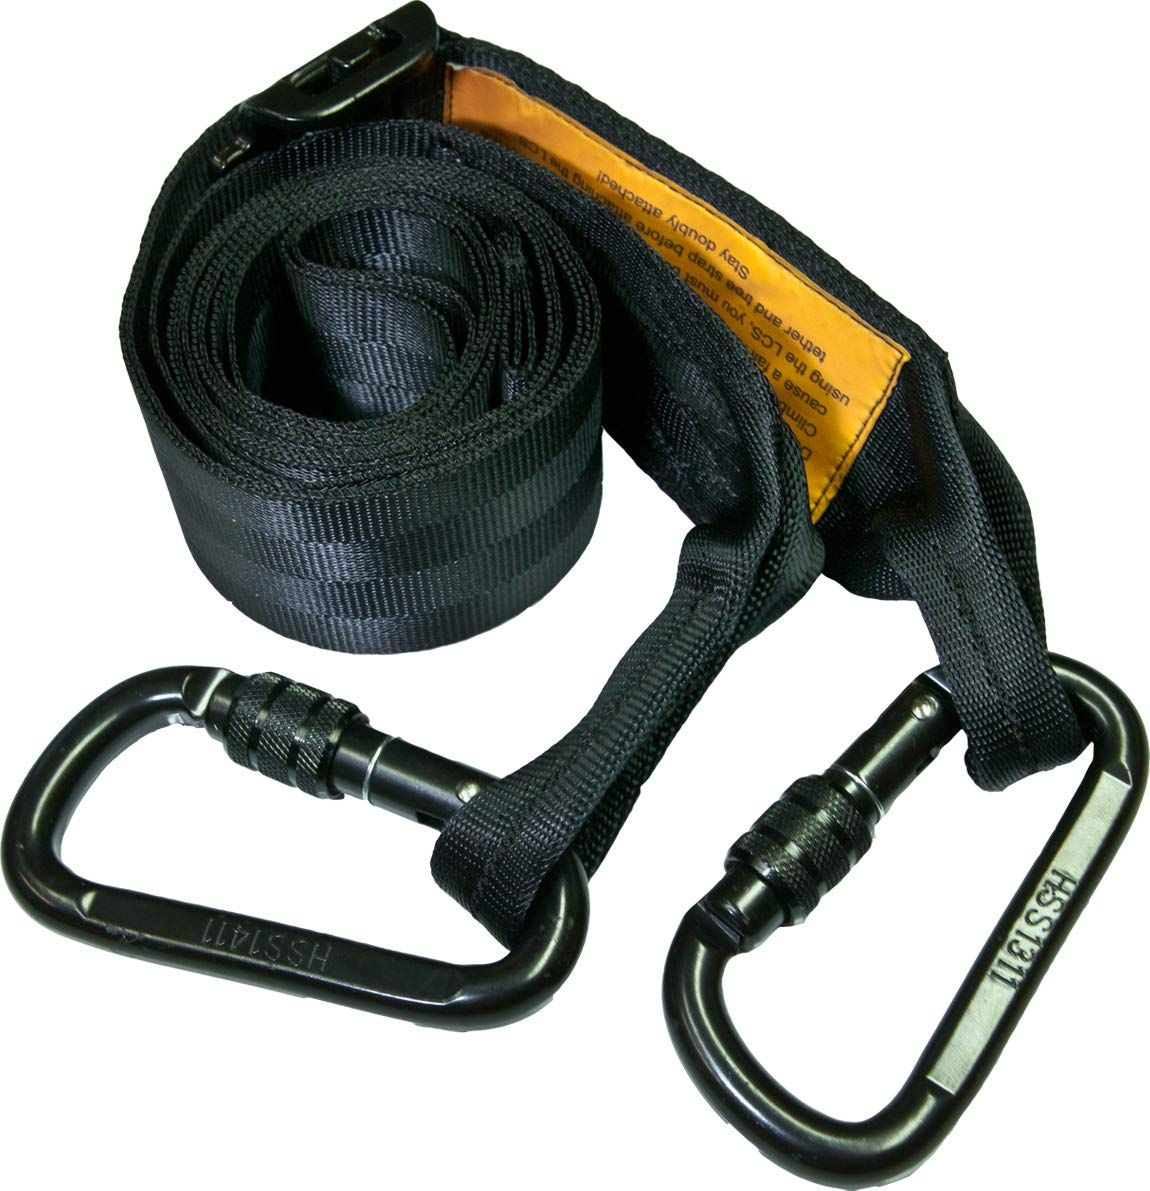 Hunter Safety System LCS Lineman's Climbing Strap https